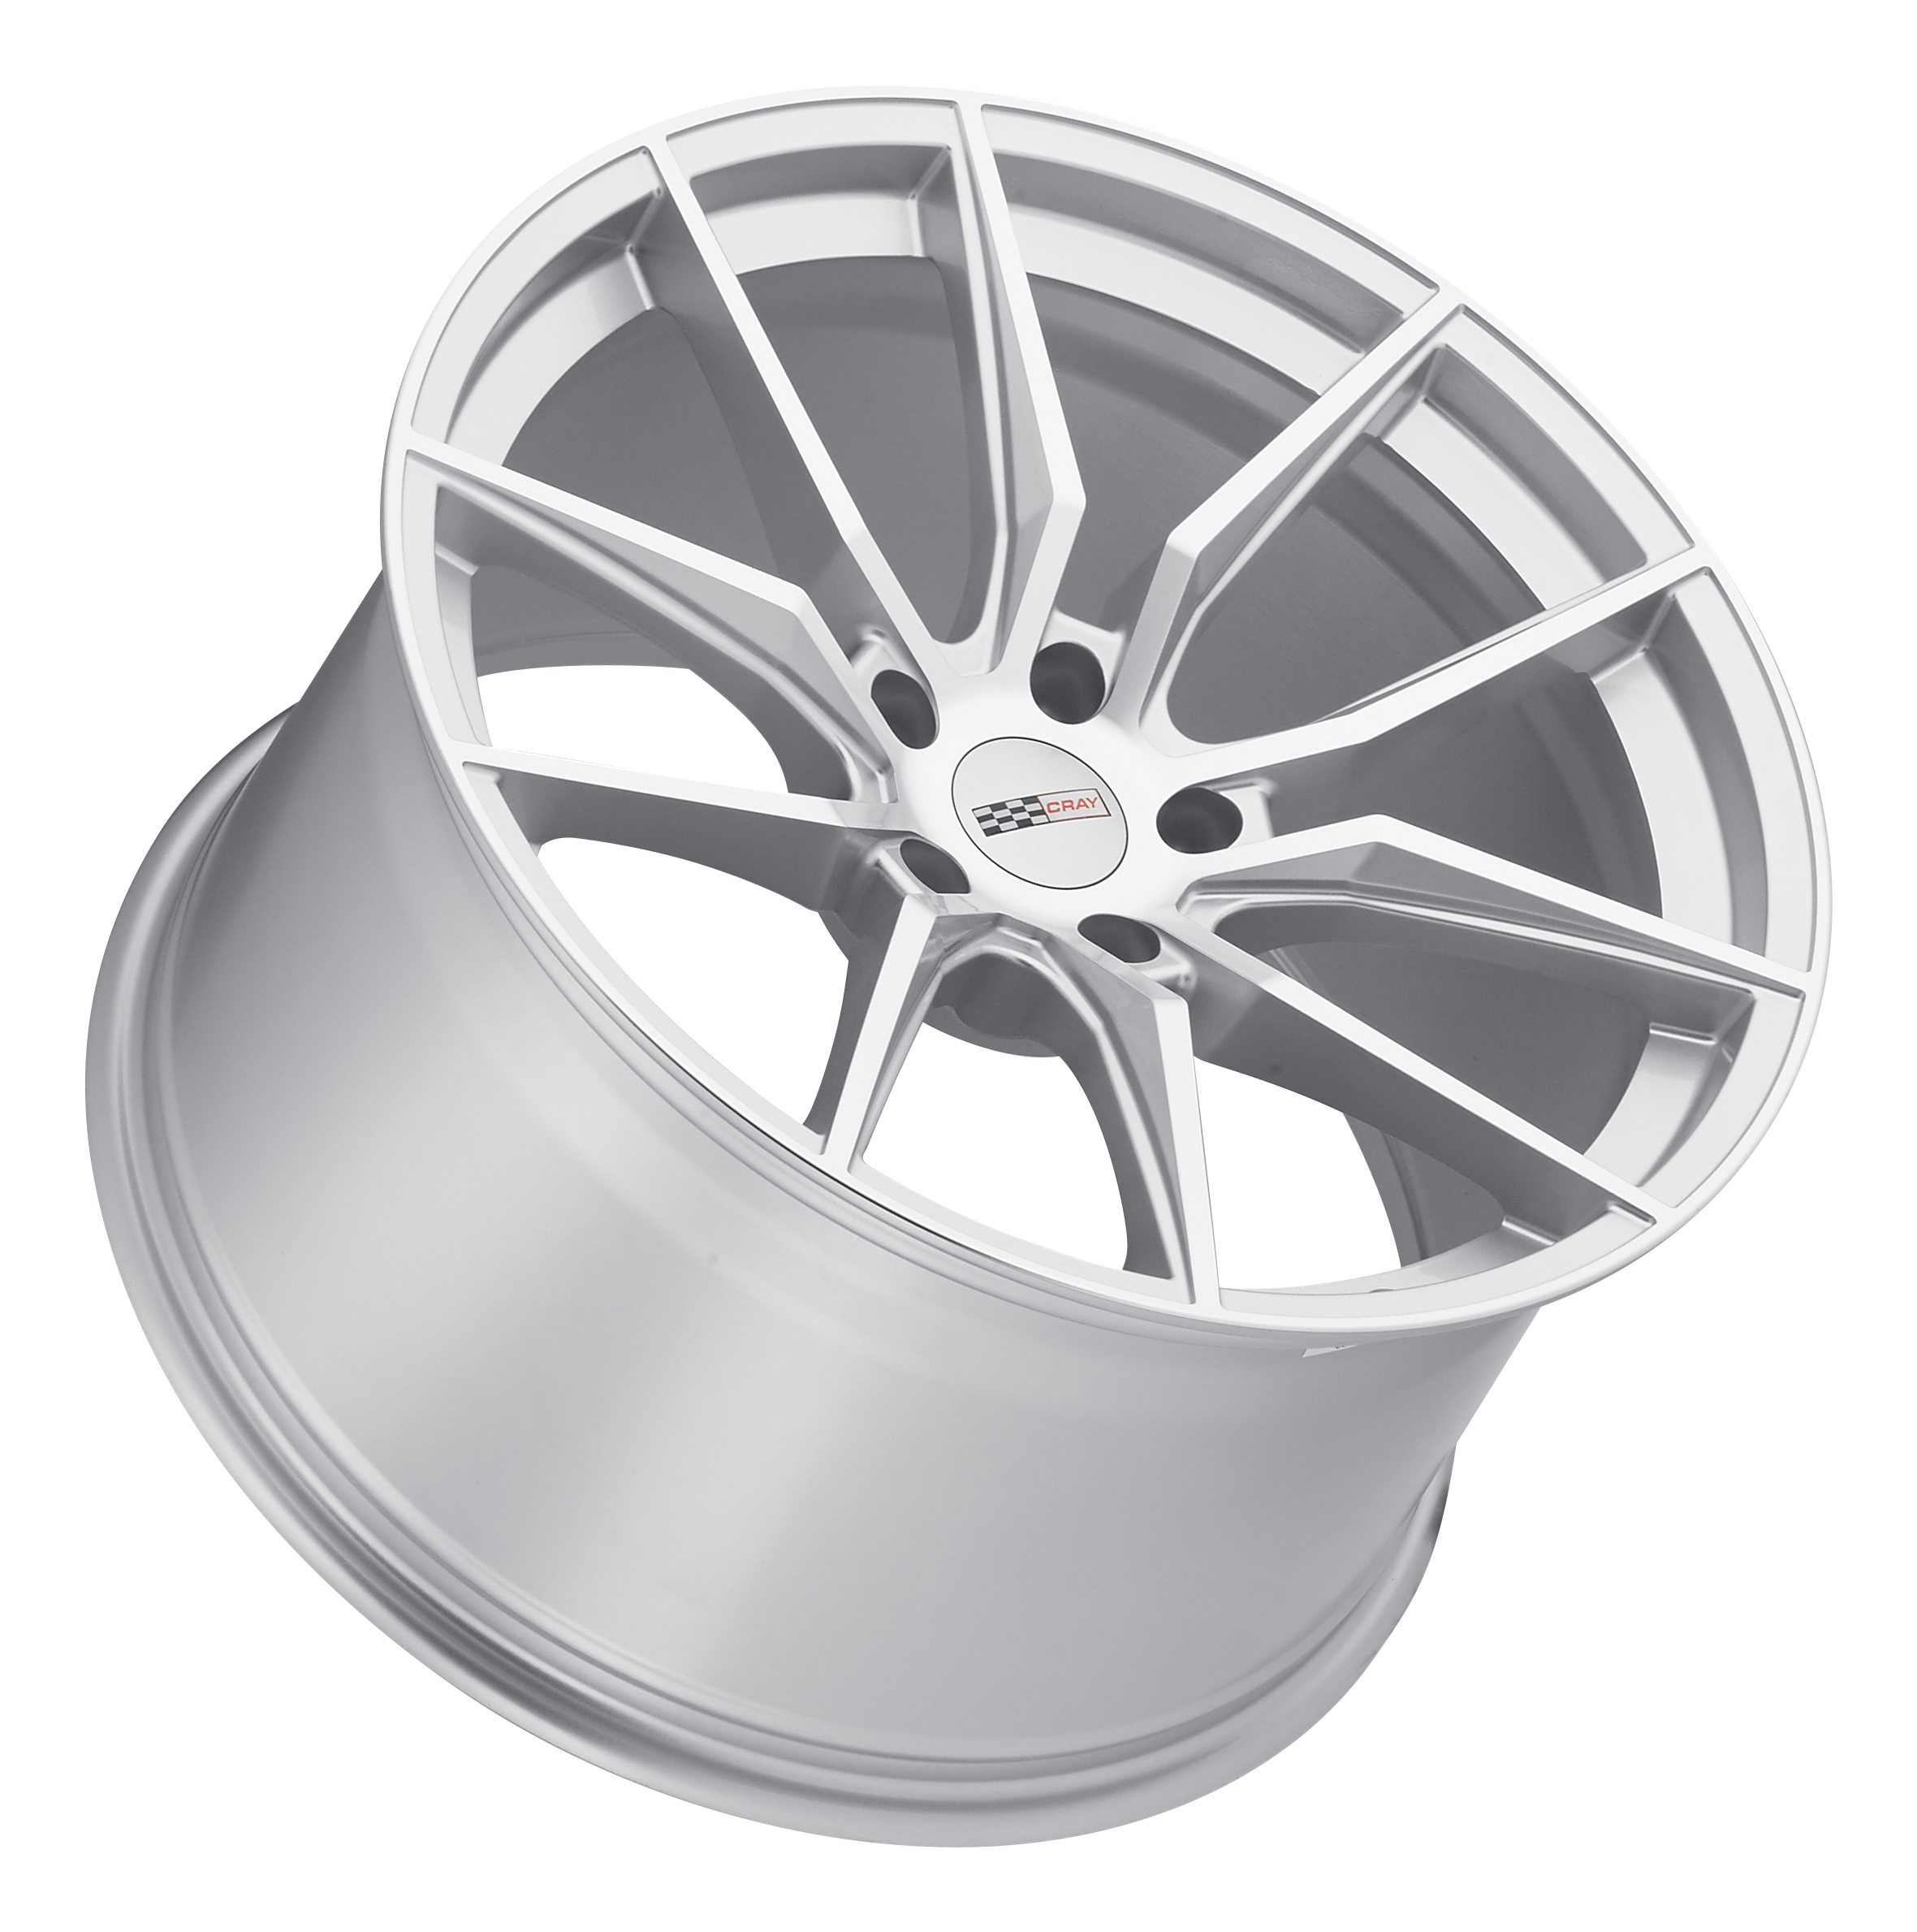 How To Buy New Rims For Car